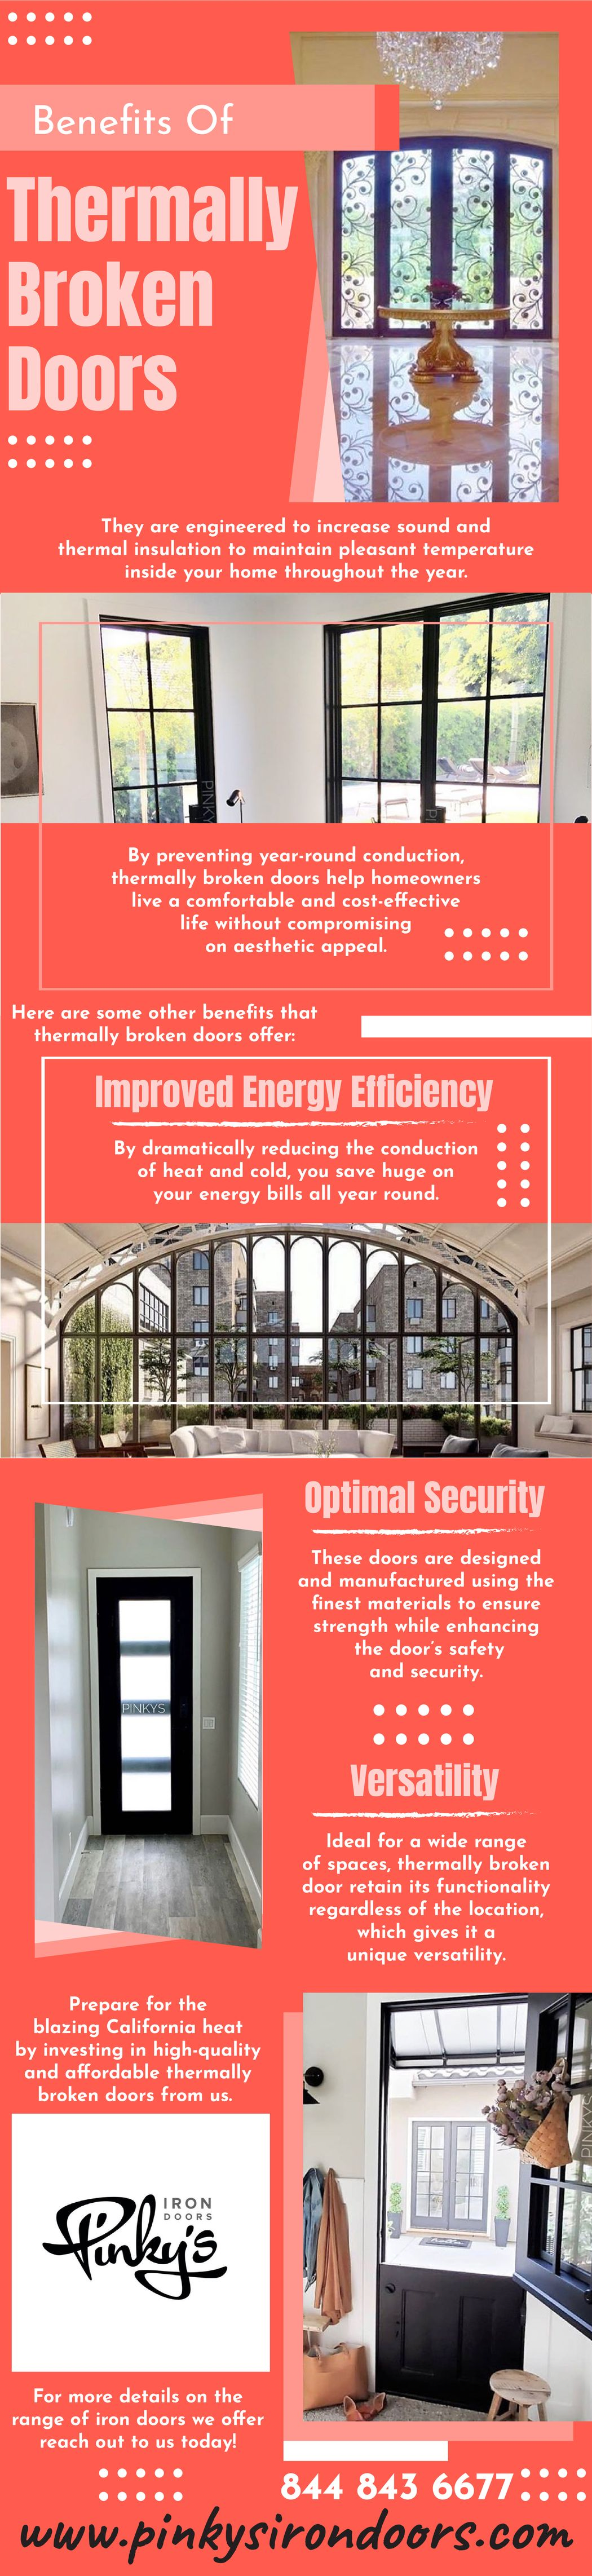 Benefits Of Thermally Broken Doors